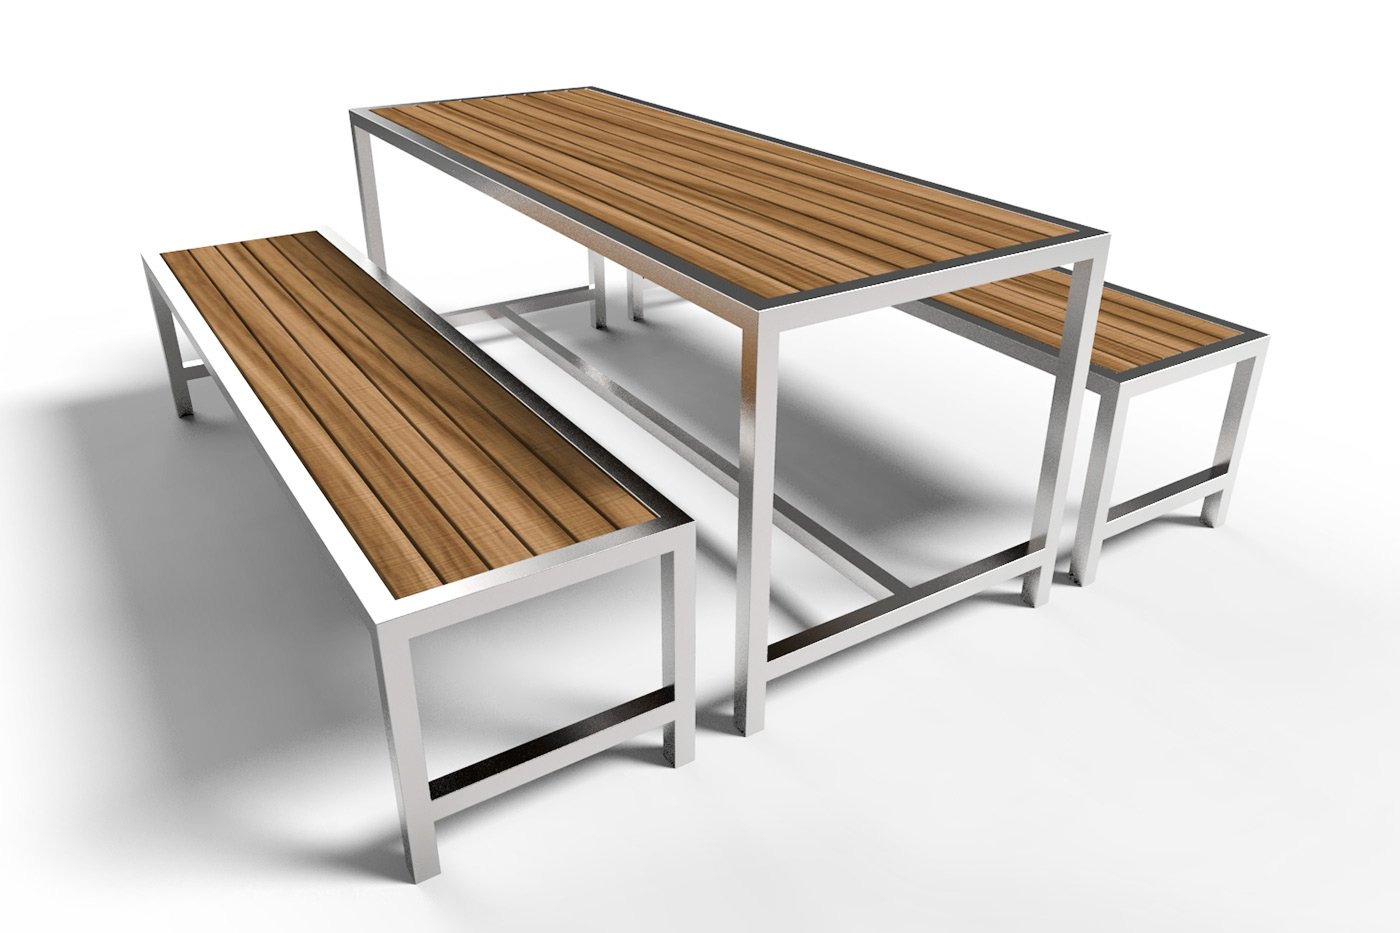 Cafe Stainless Steel Picnic Setting Commercial Systems Australia - Stainless steel picnic table